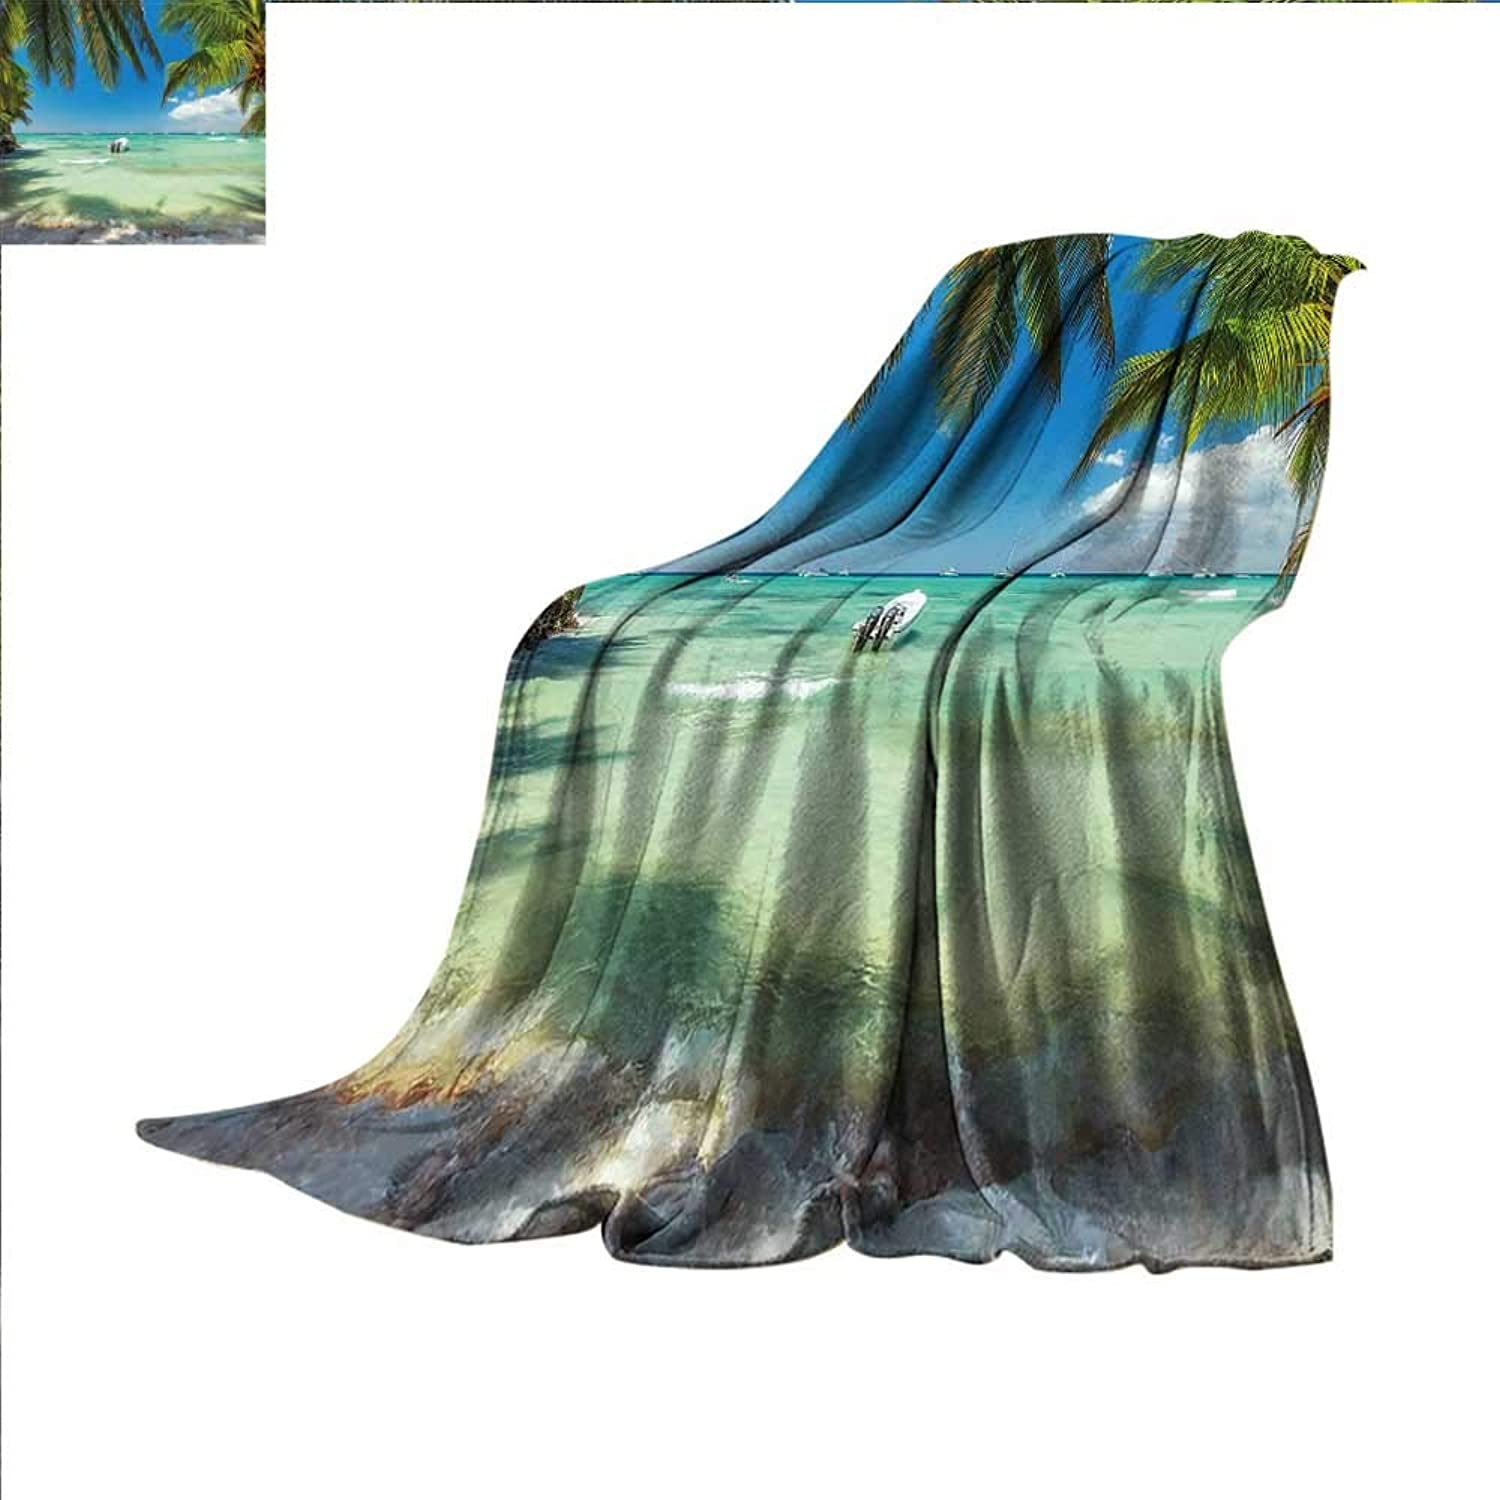 Smallbeefly Tropical Digital Printing Blanket Surreal Sea Surrounded by Palm Tree Leaves Scenic Nature Summertime Summer Quilt Comforter 60 x50  Fern Green Turquoise bluee